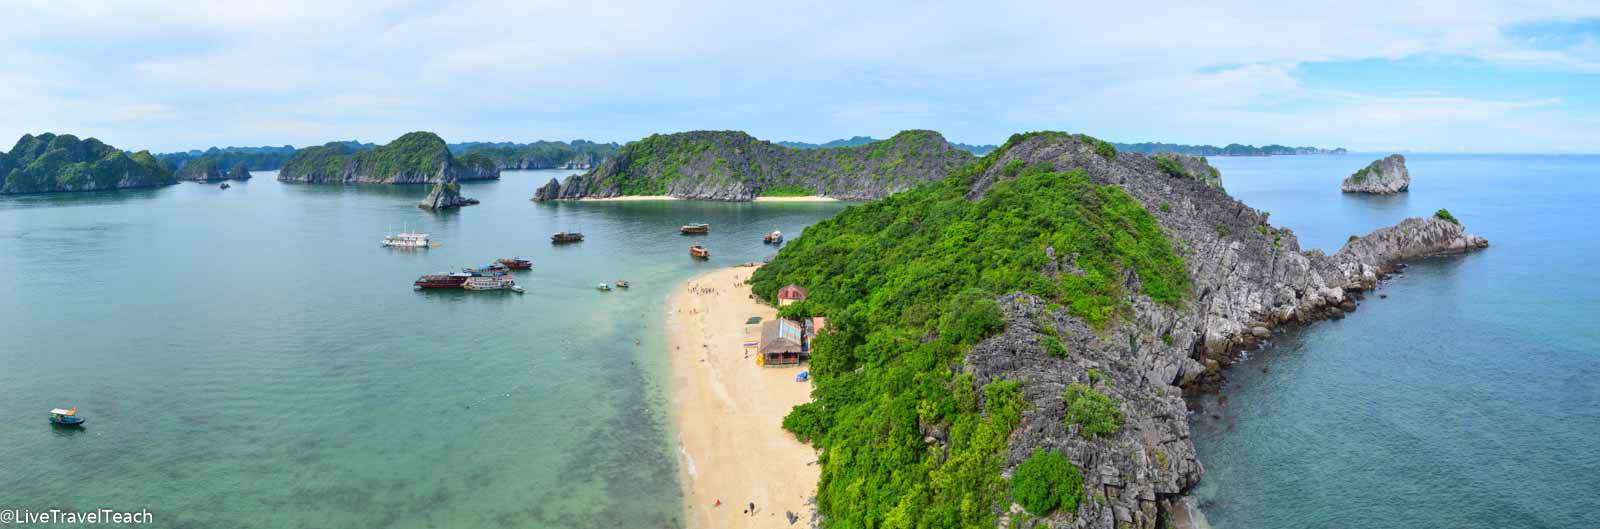 Monkey Beach in Vietnam